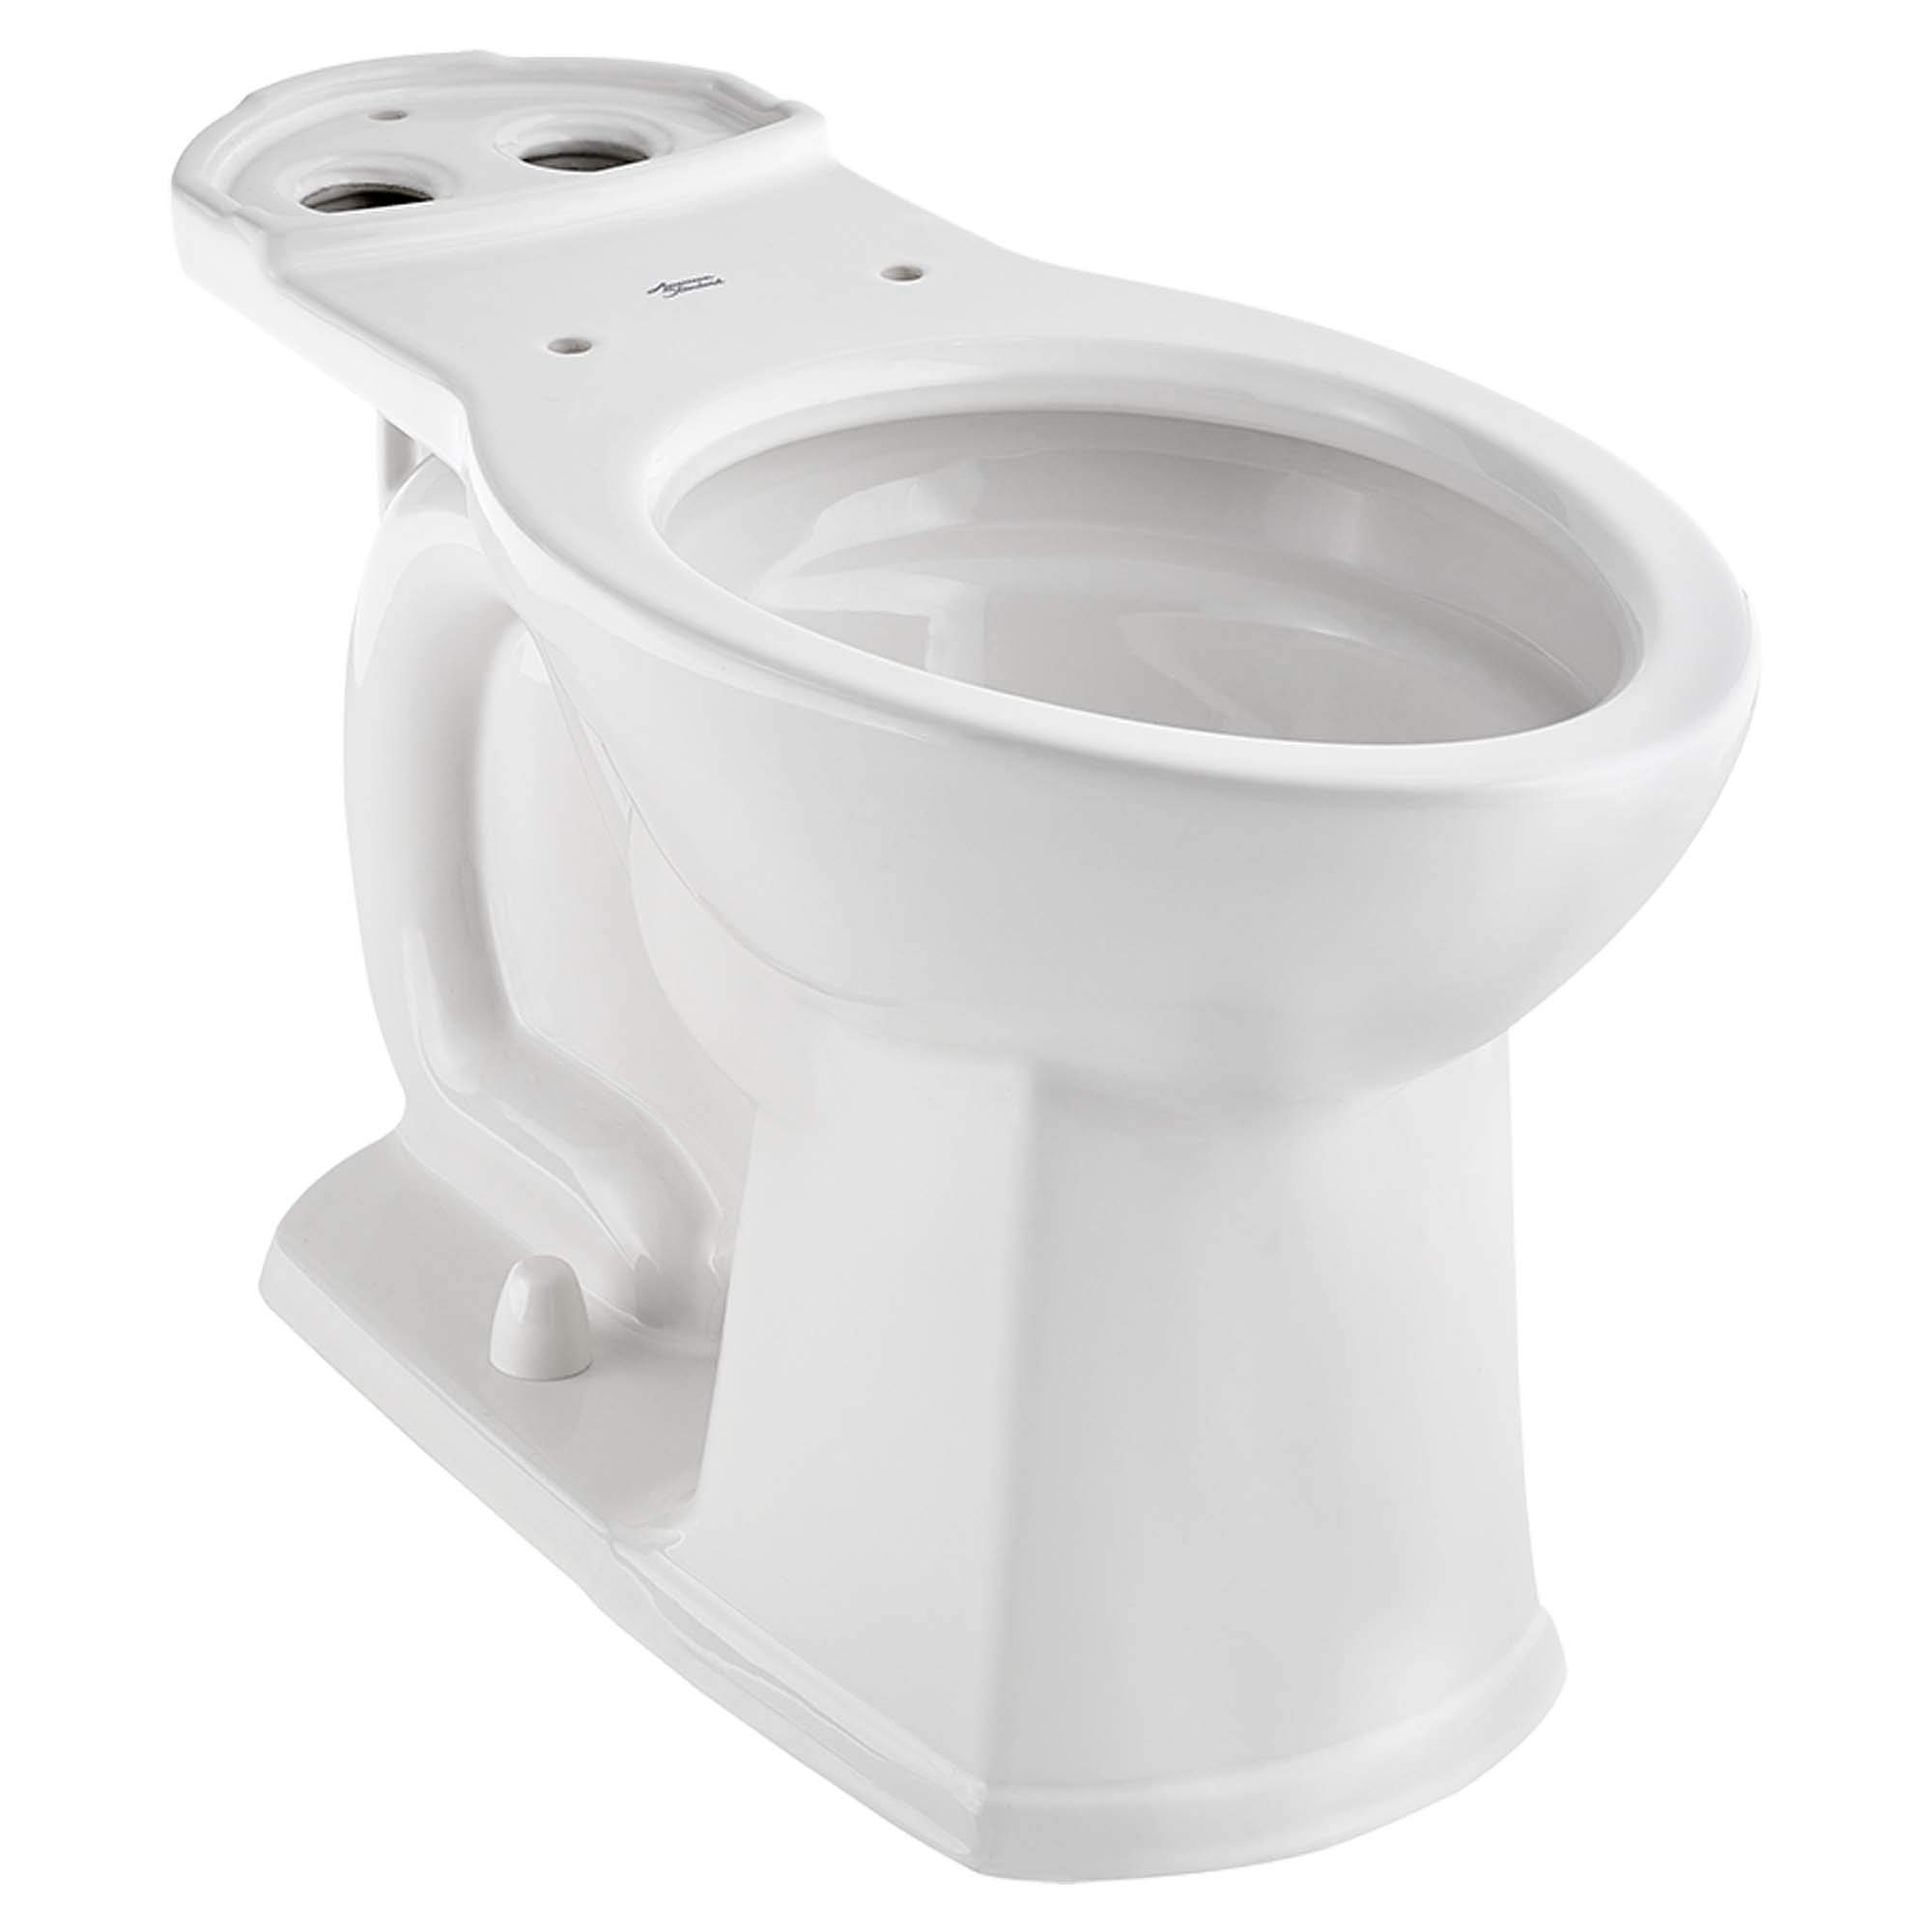 American Standard 3070A104.020 VorMax ActiClean Right Height Elongated Toilet Bowl